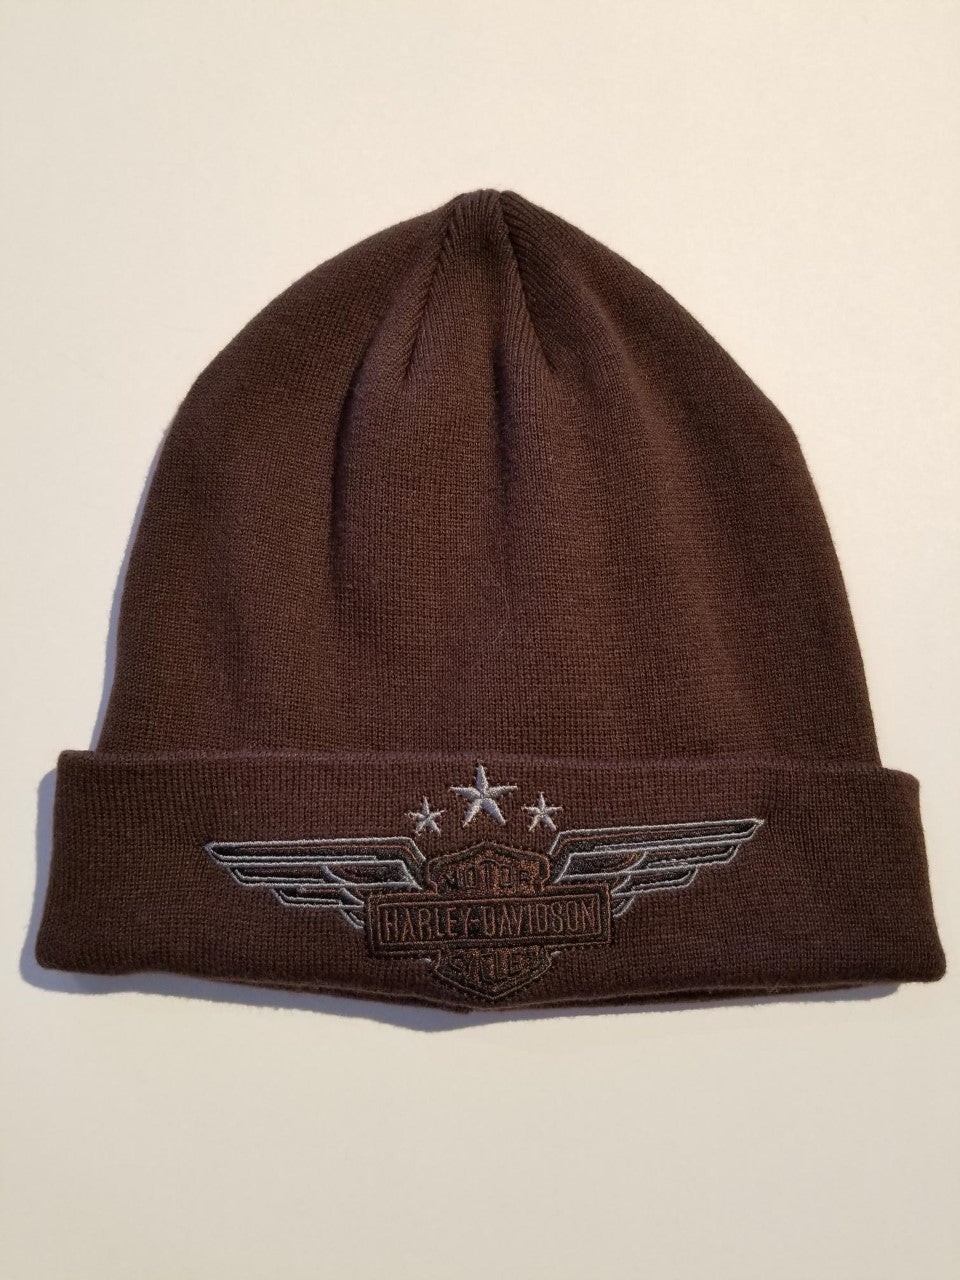 Harley-Davidson hat-knit, cuffed military oct dlv men's, canteen